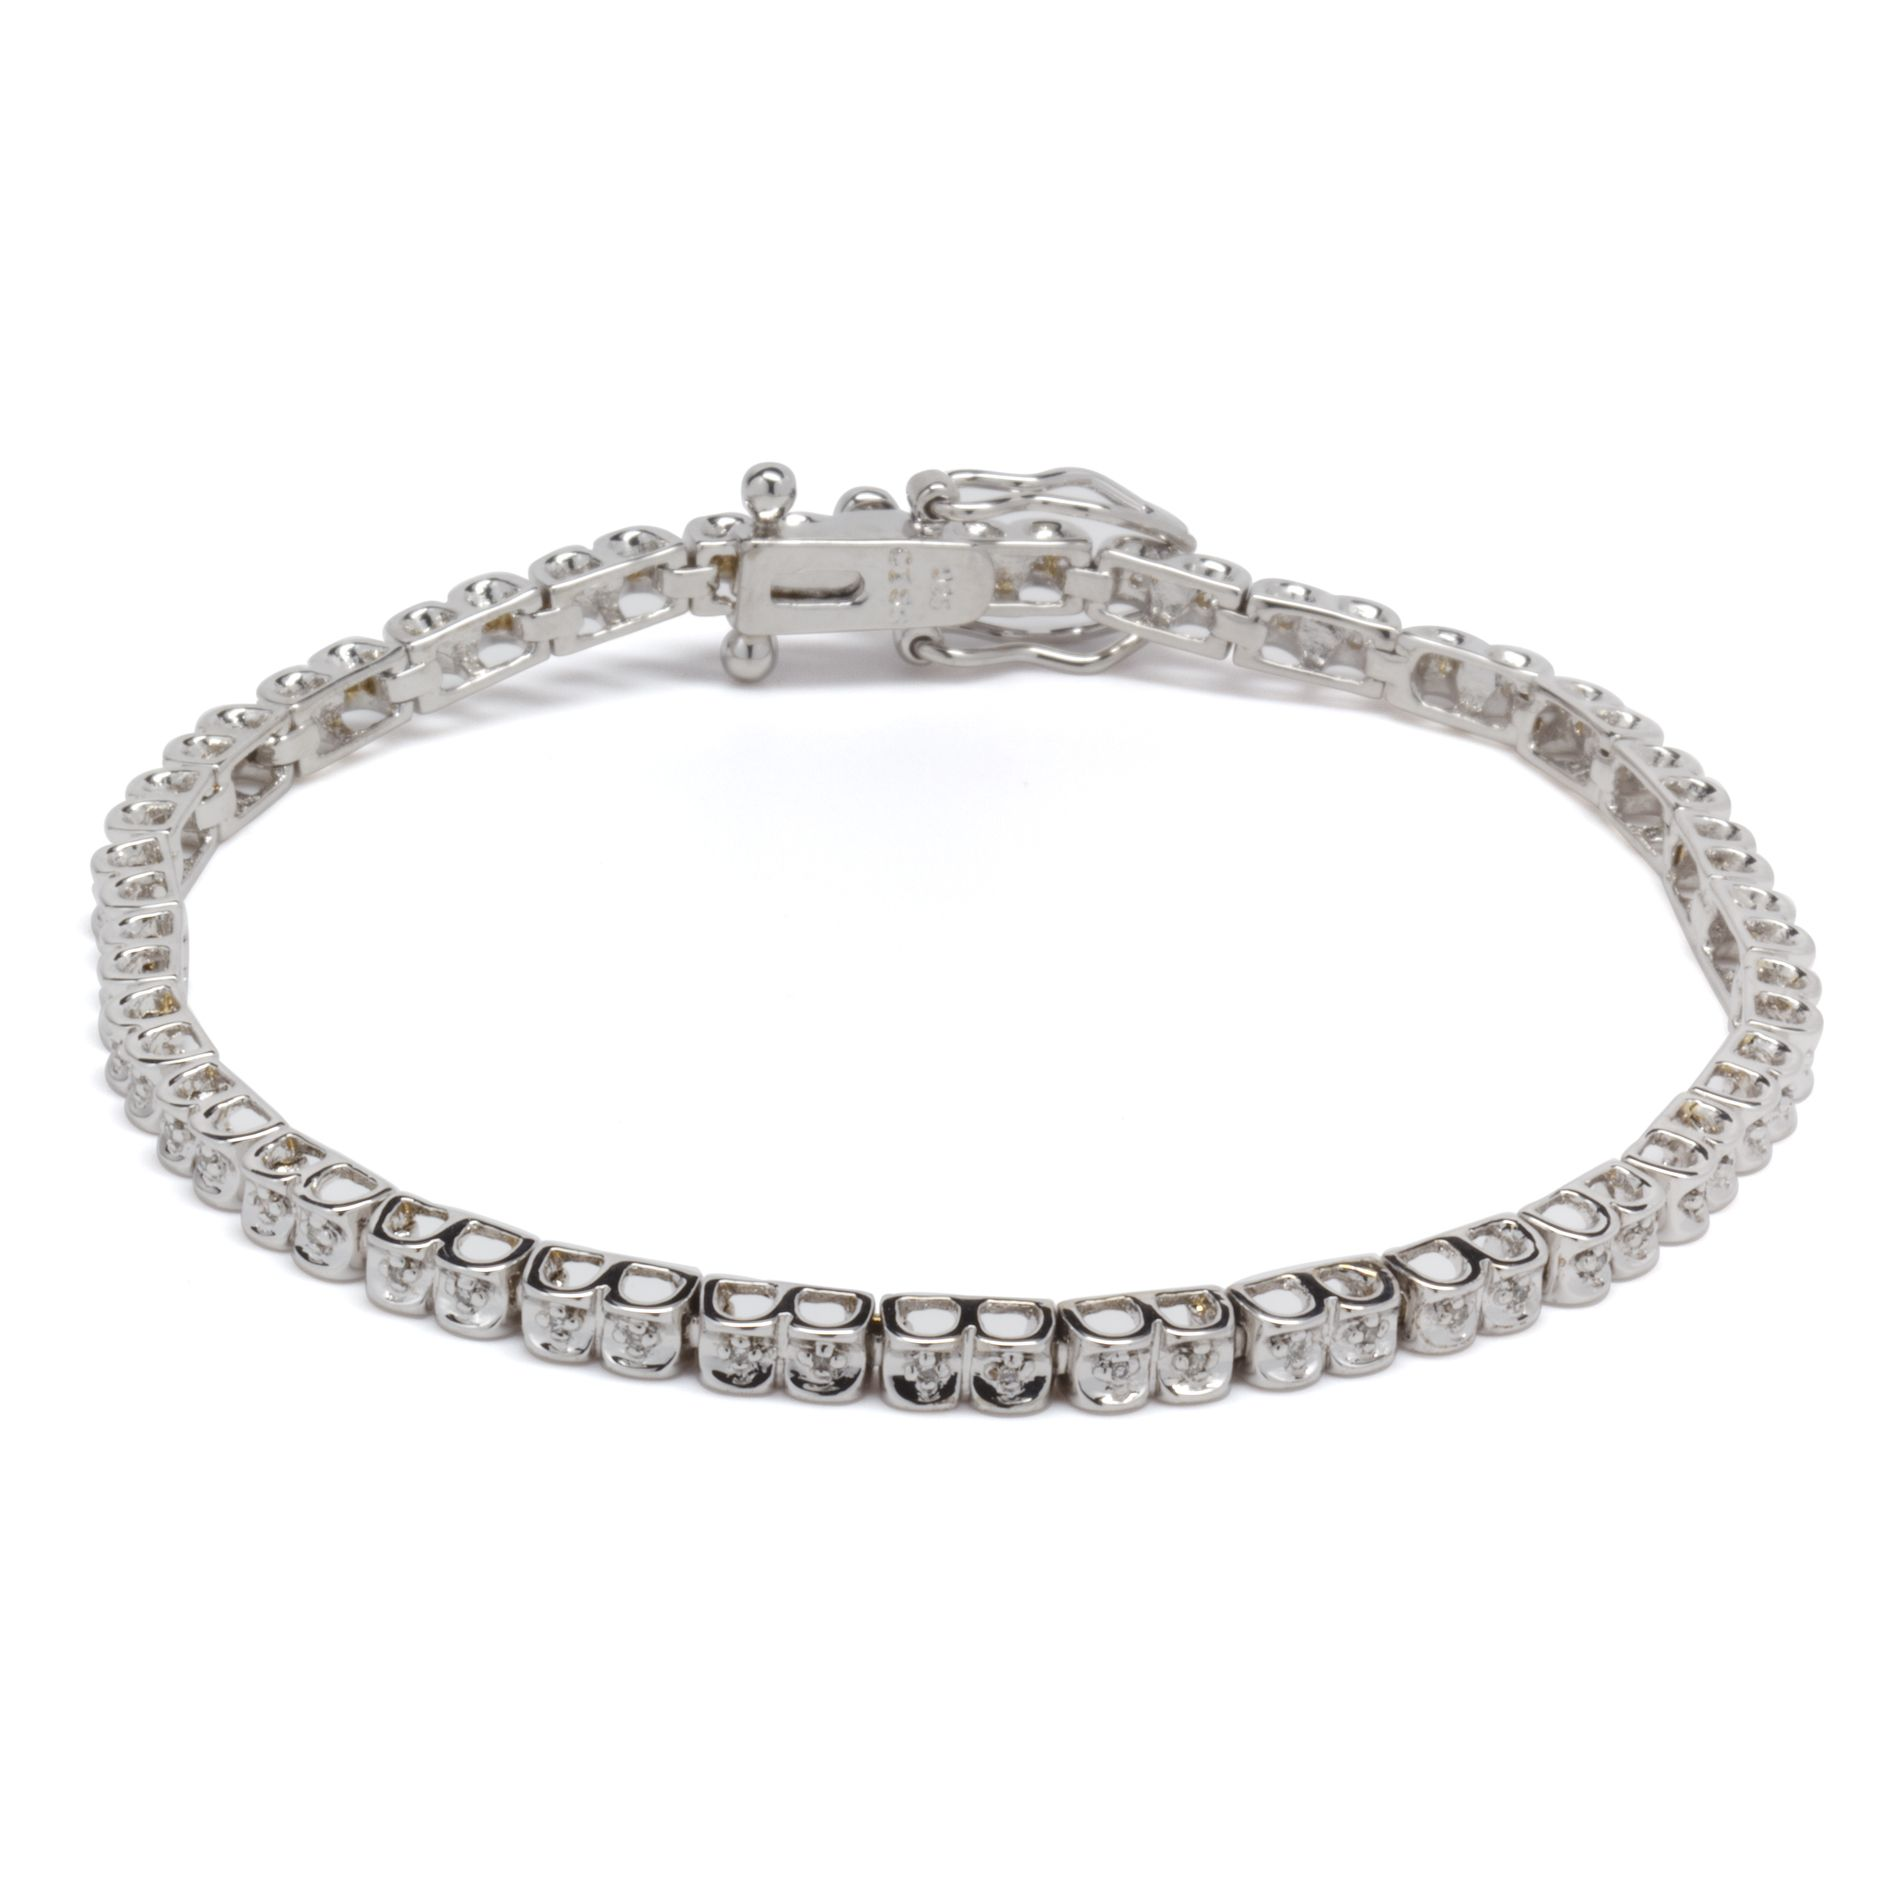 1/4cttw Diamond Bracelet in Sterling Silver